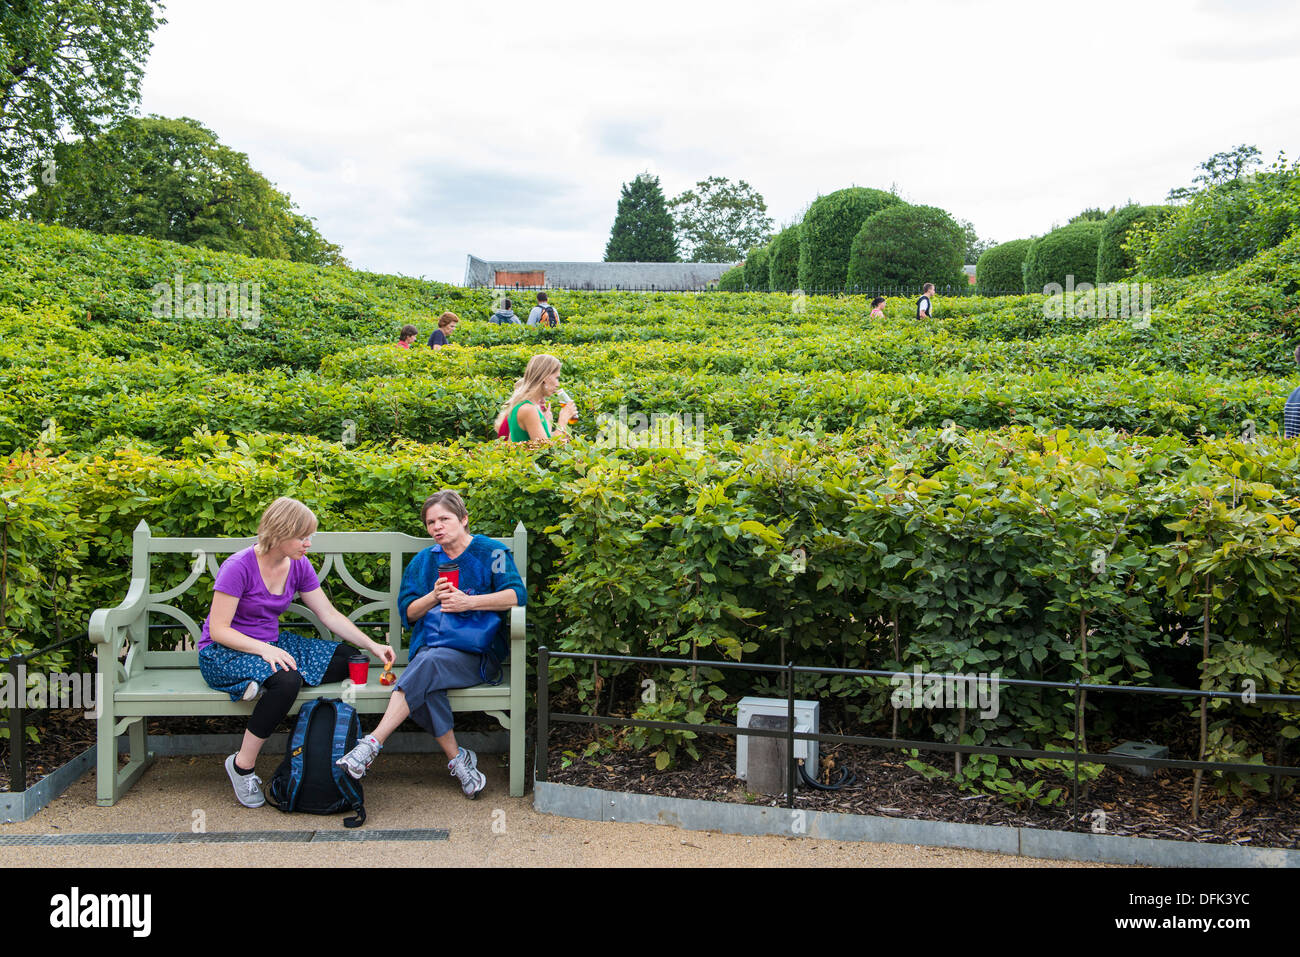 LONDON, UK - AUGUST 13: Side view of people walking up shrubbery maze leading to the grounds of Kensington Palace, Stock Photo